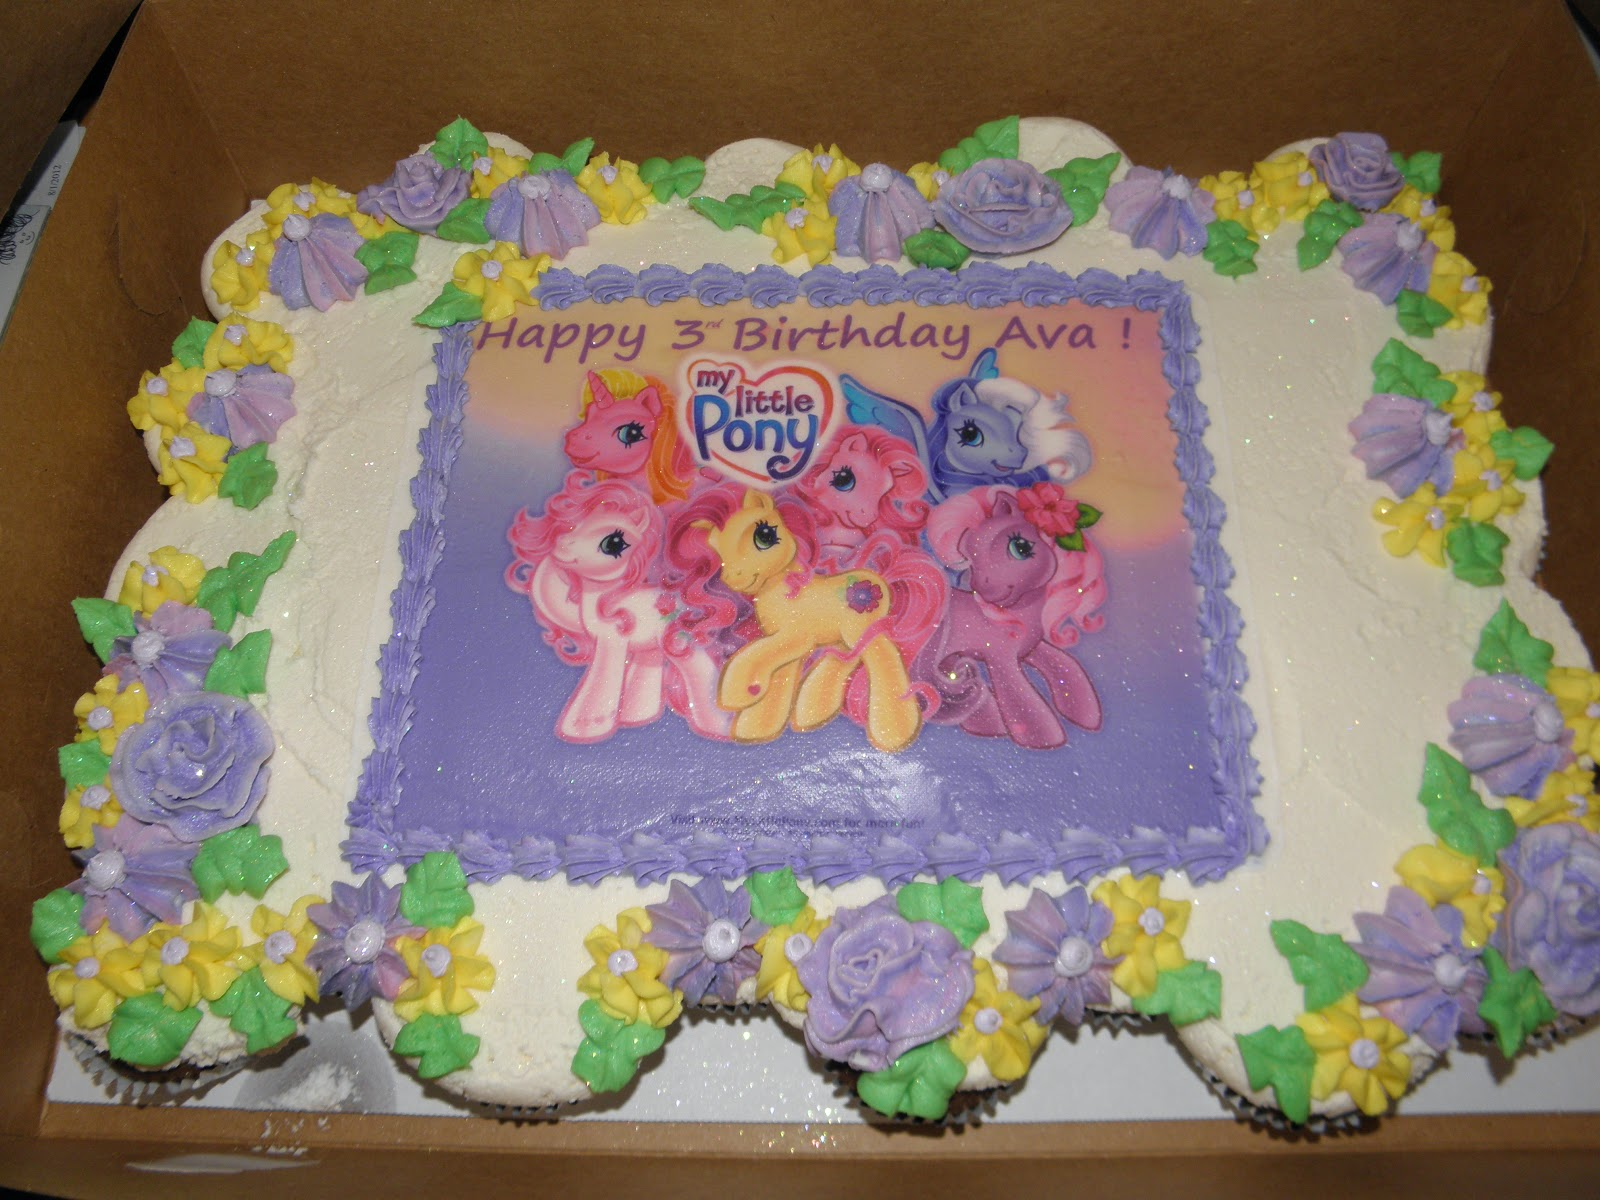 My Little Pony Cupcake Ideas My little pony!